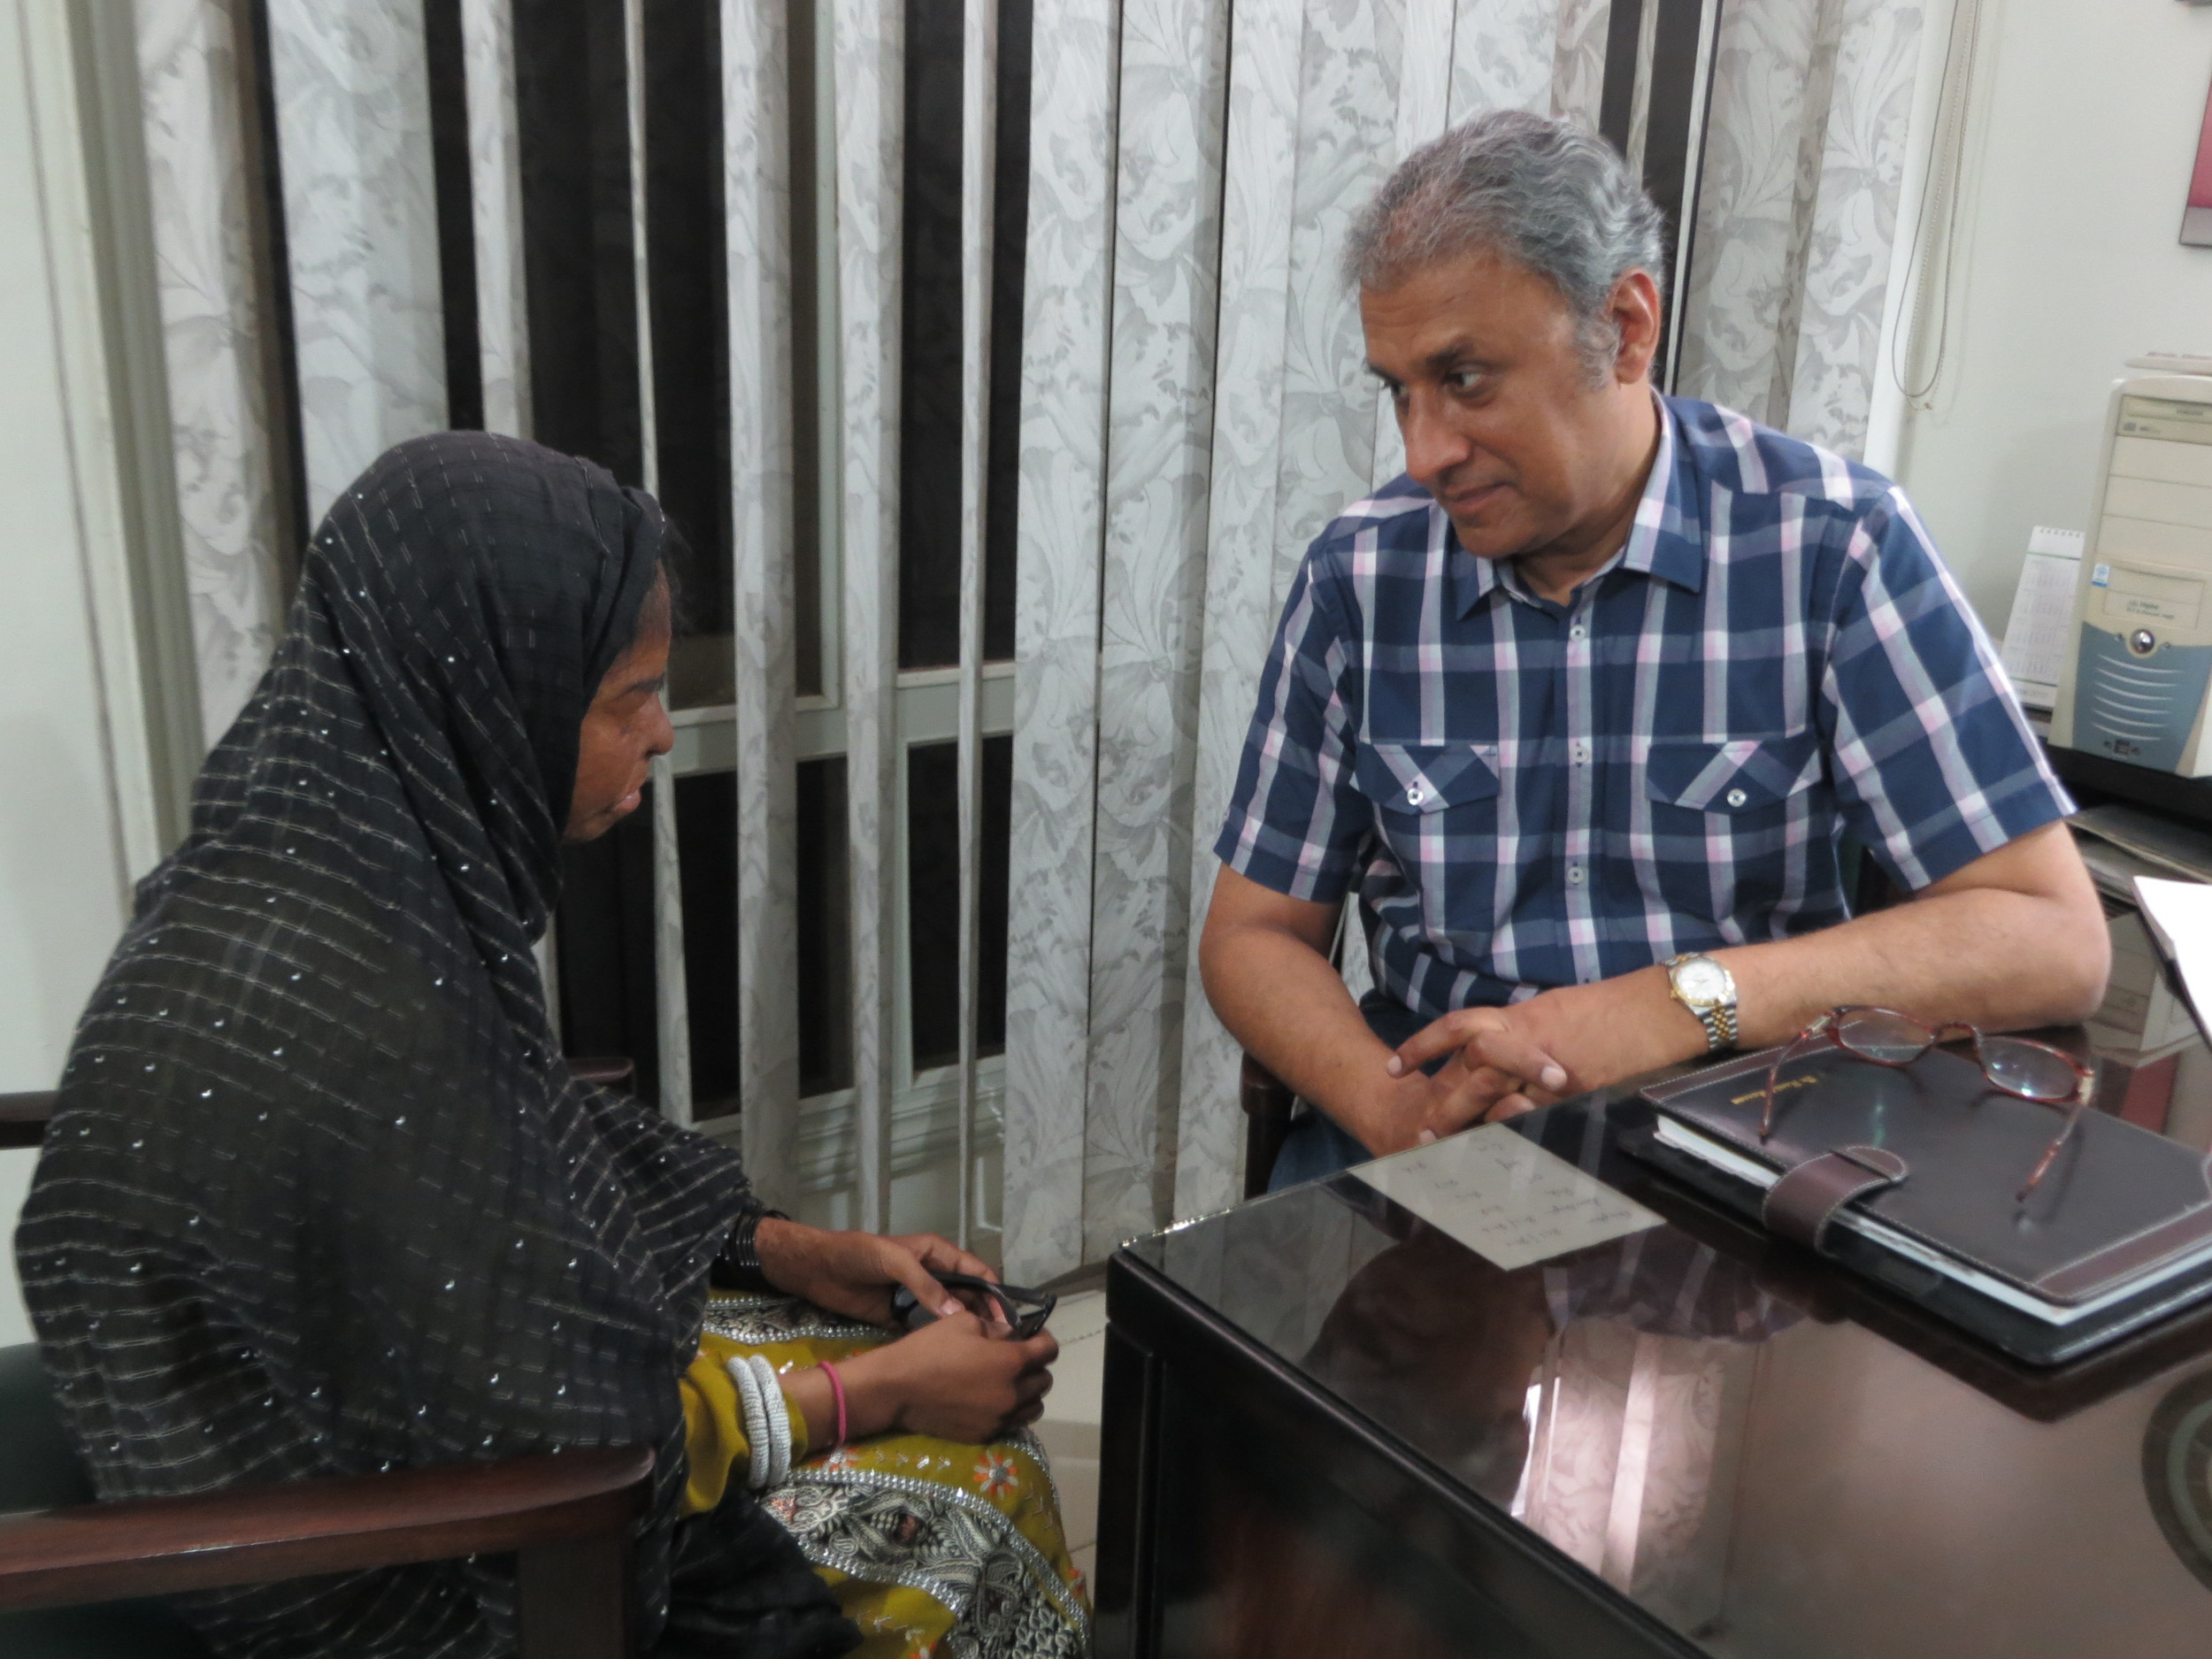 Sidra Yasmeen speaks with Dr. Hamid Hassan who has performed two surgeries on her since she was attacked with acid at the age of thirteen.